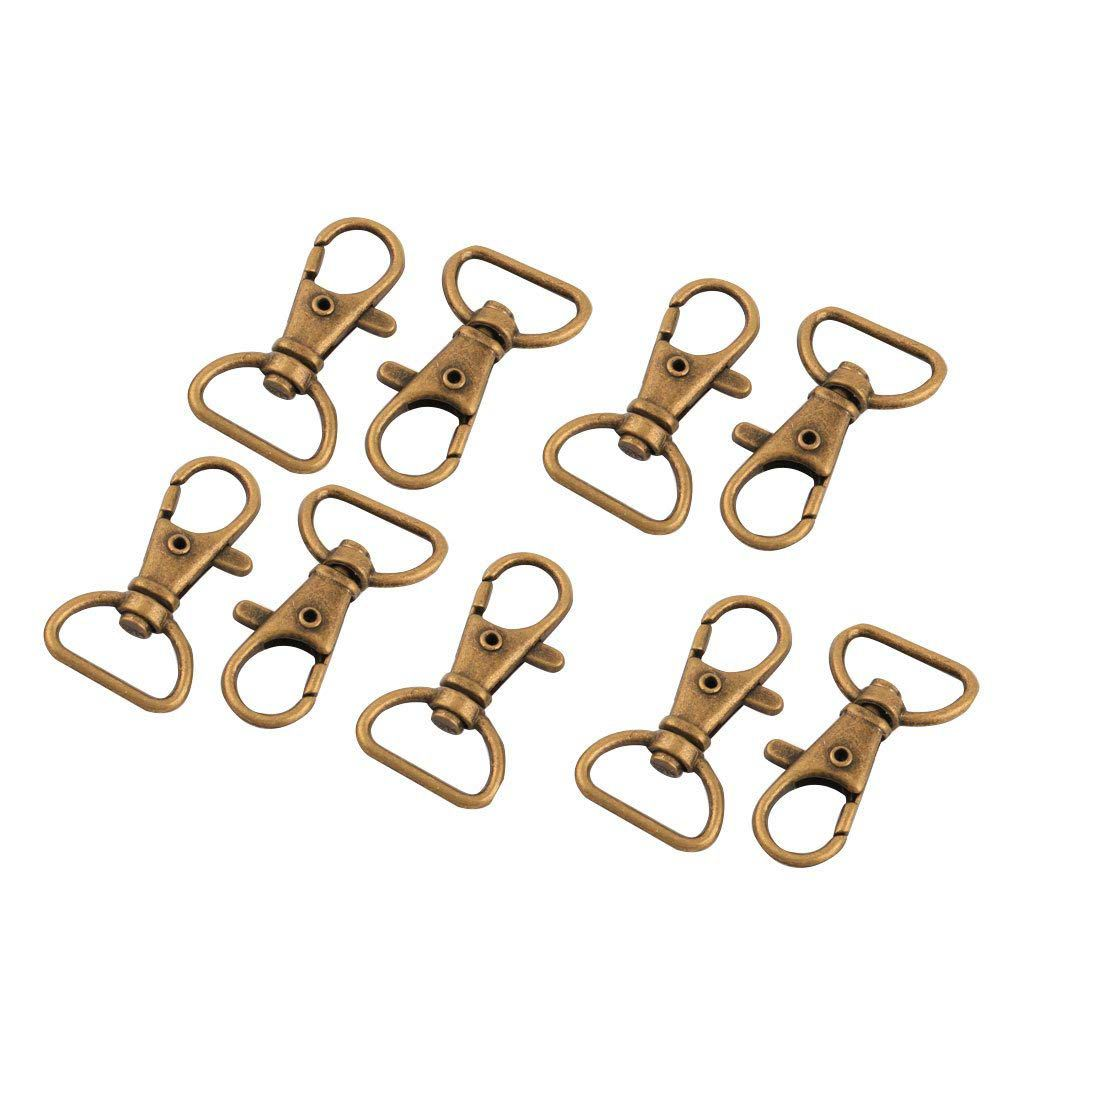 DSGS Shoulder bag metal band Insurance carabiner Rotating swivel Buckle Bronze tone 9 pcs